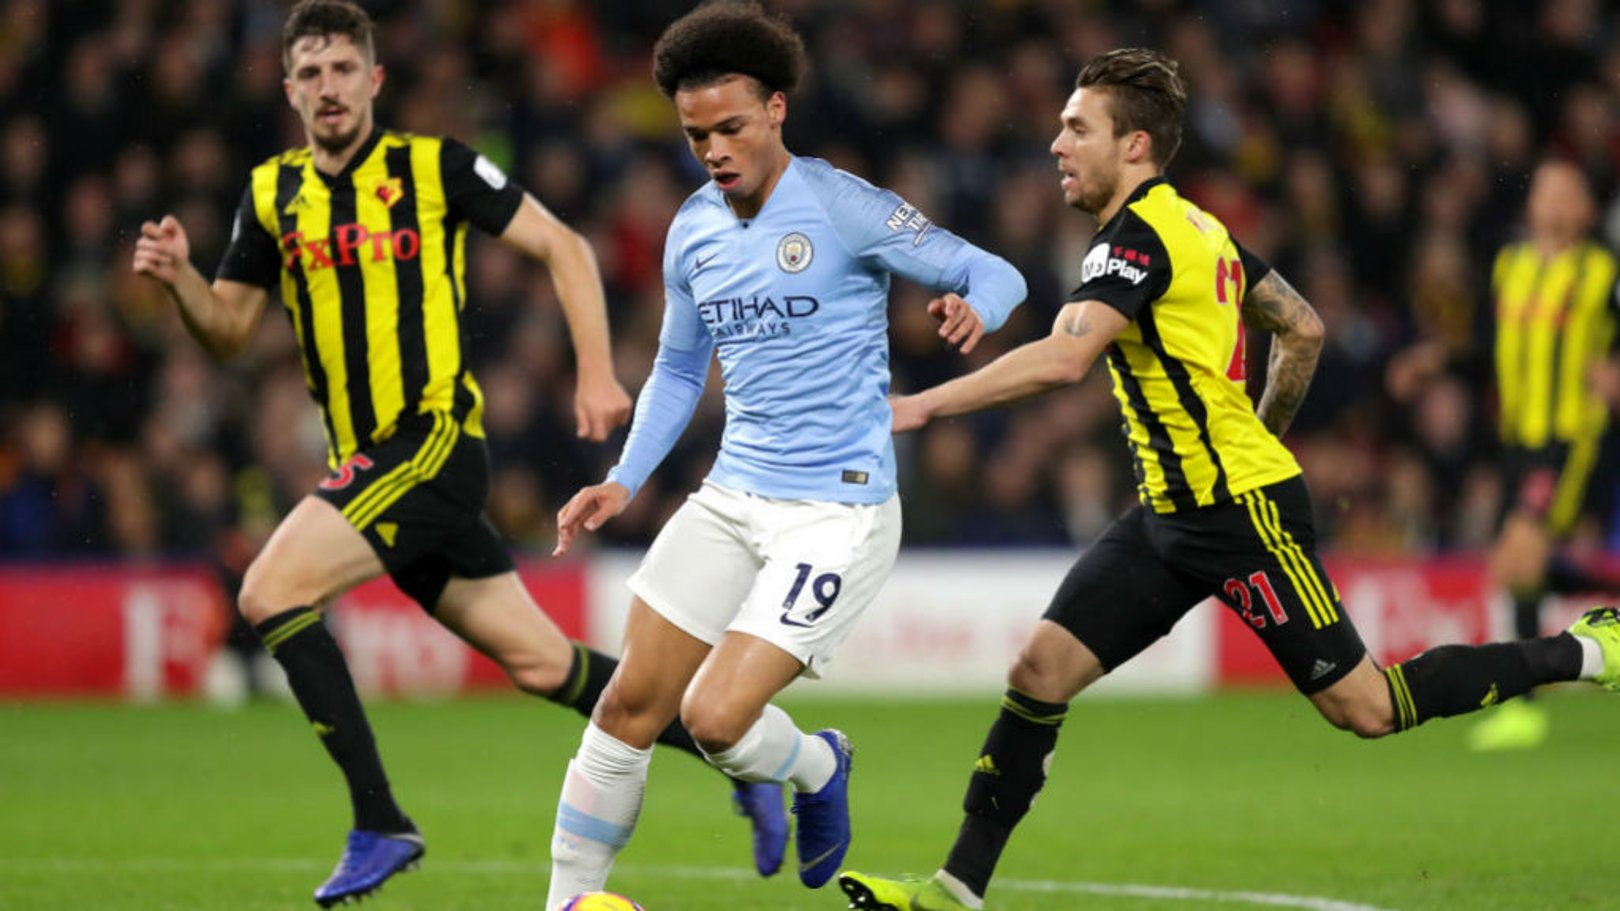 WING WIZARD: Leroy Sane sets off another attacking run